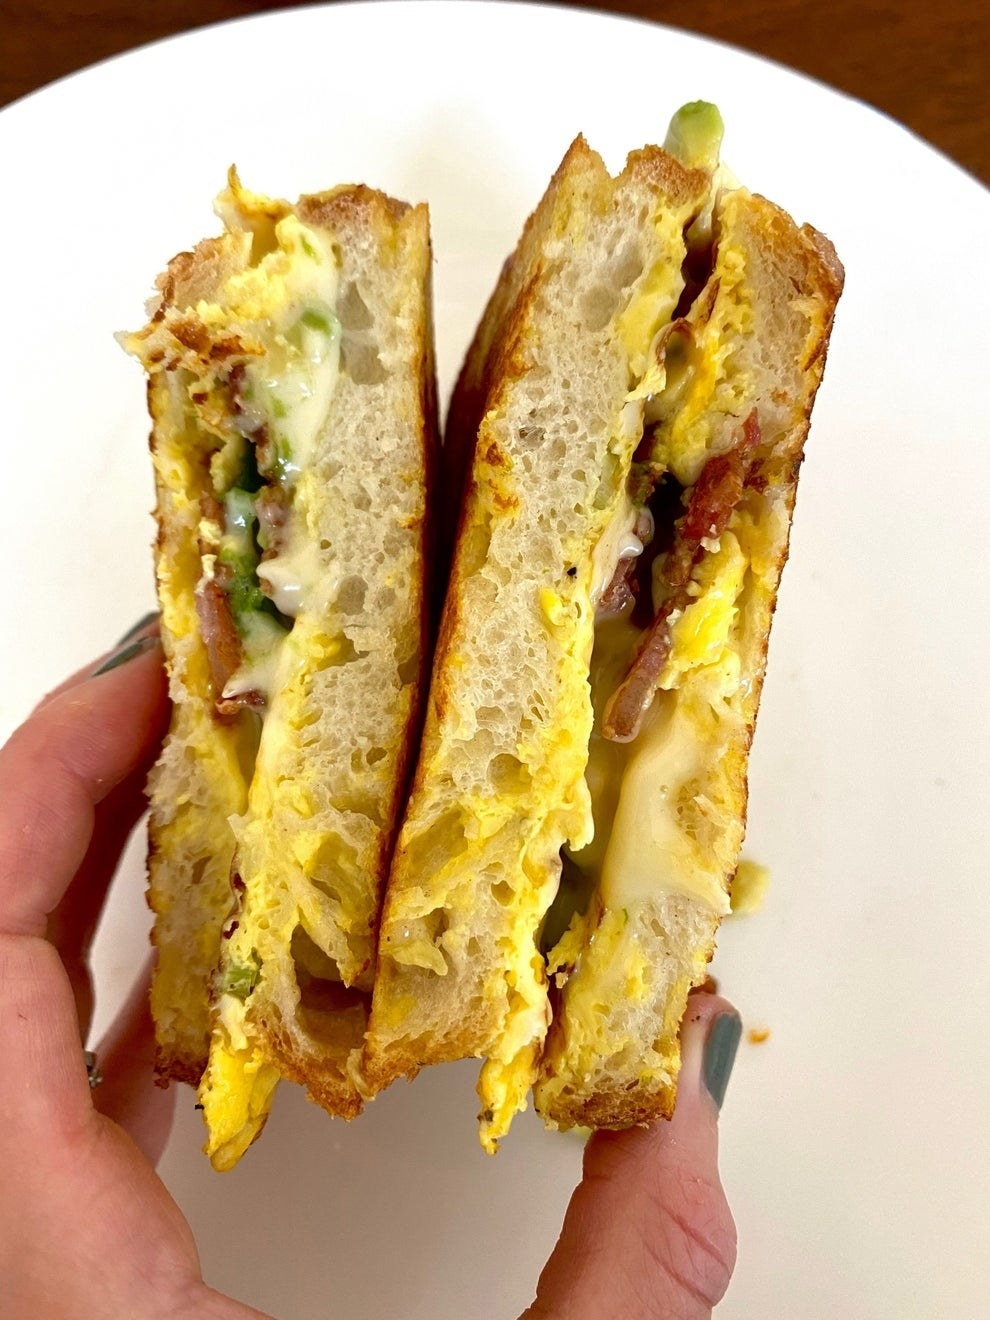 Hands holding a cheesy bacon, egg, and cheese sandwich sliced in half.